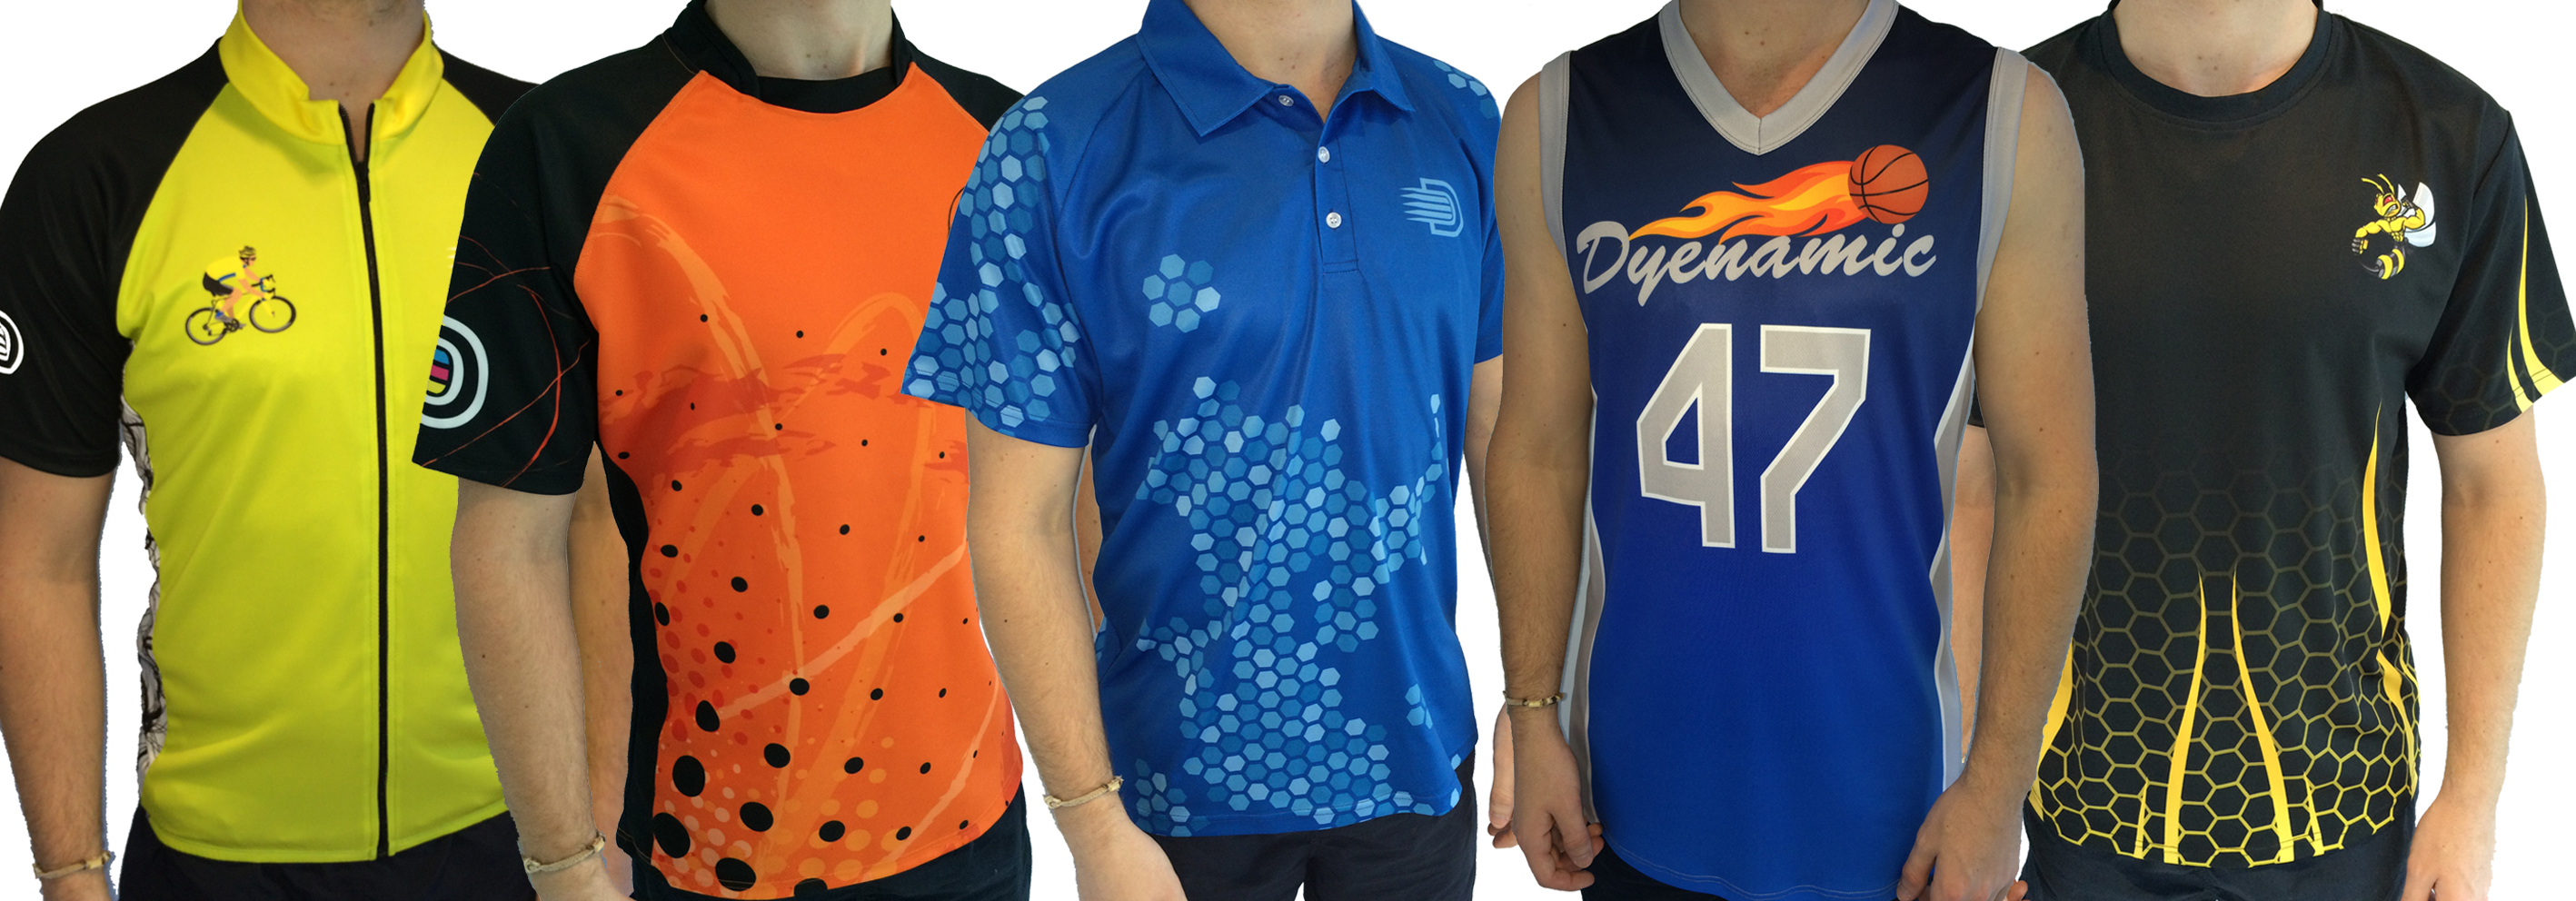 What is Sublimation? | Scragga's Clothing and Promotional Products